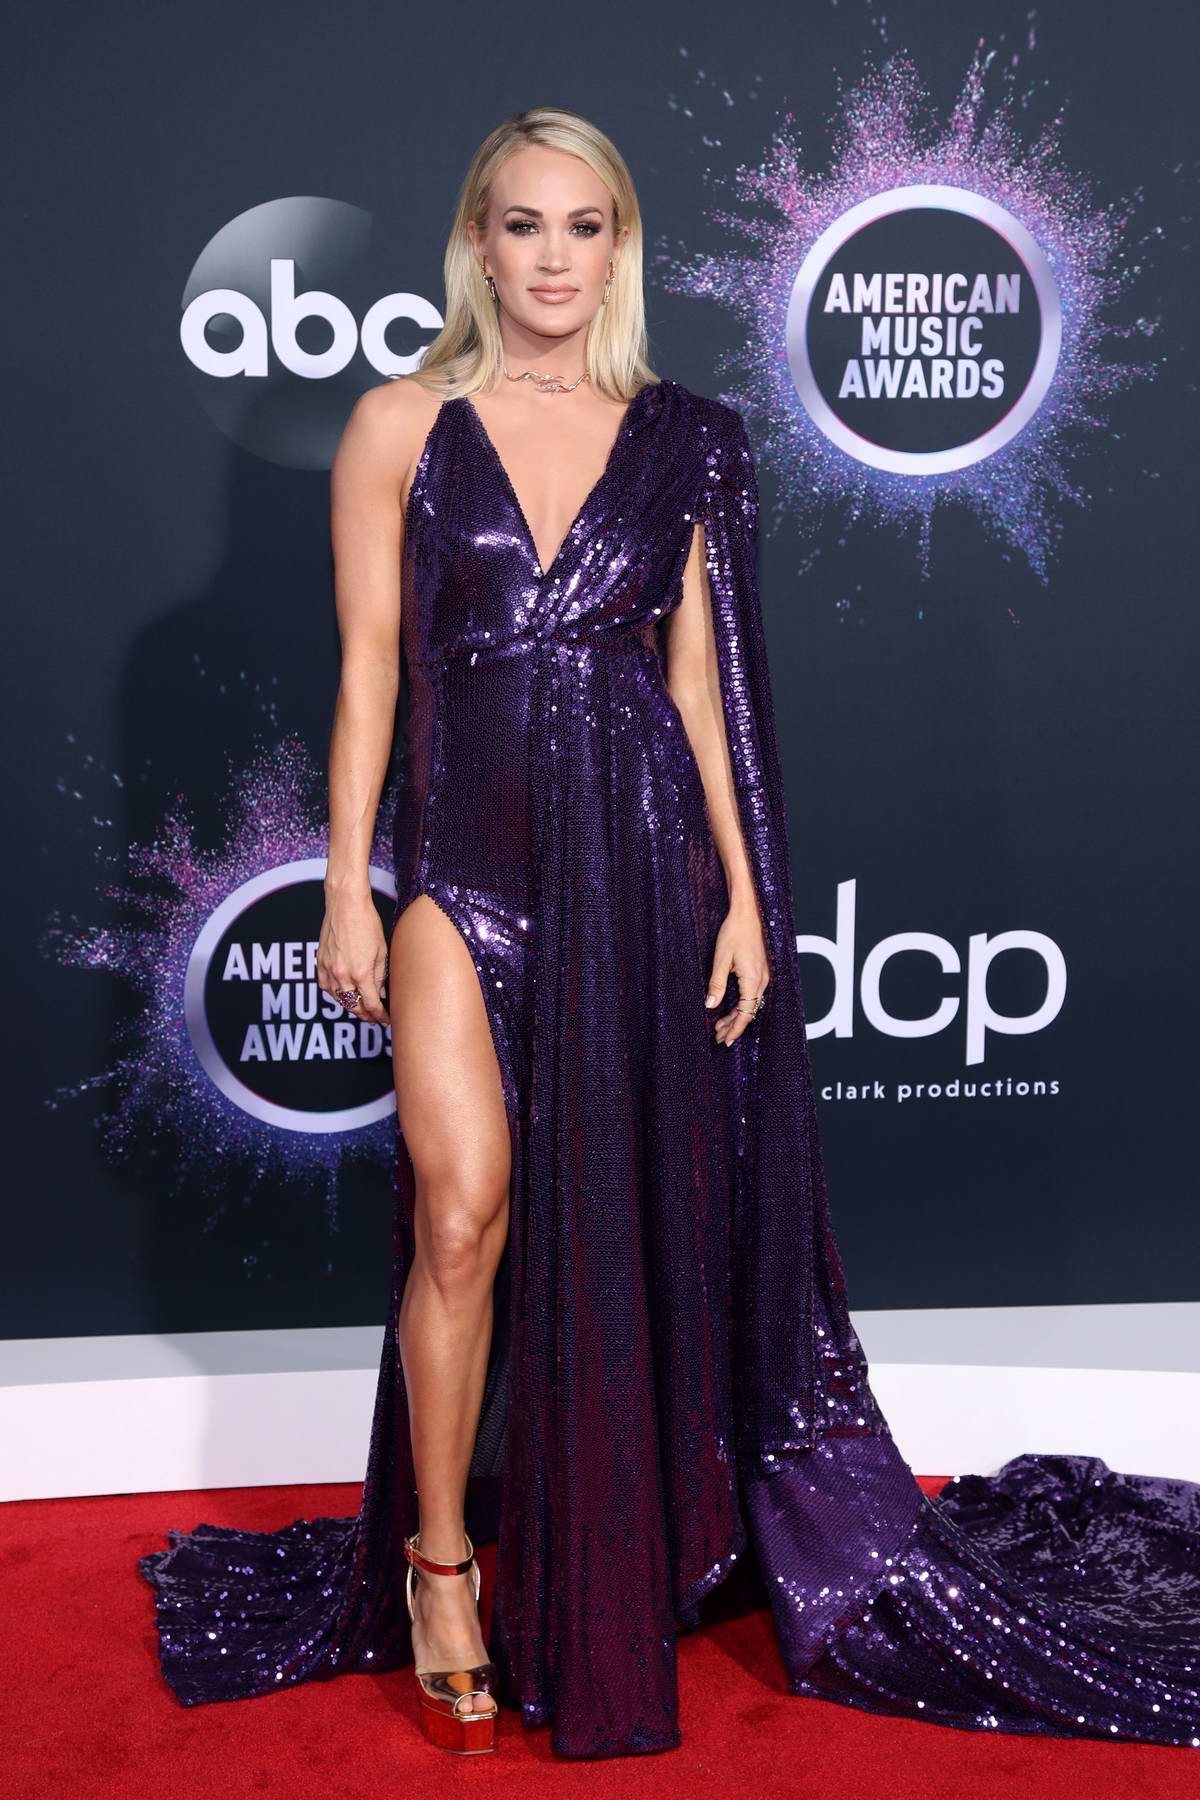 Carrie Underwood attends the 2019 American Music Awards at Microsoft Theater in Los Angeles